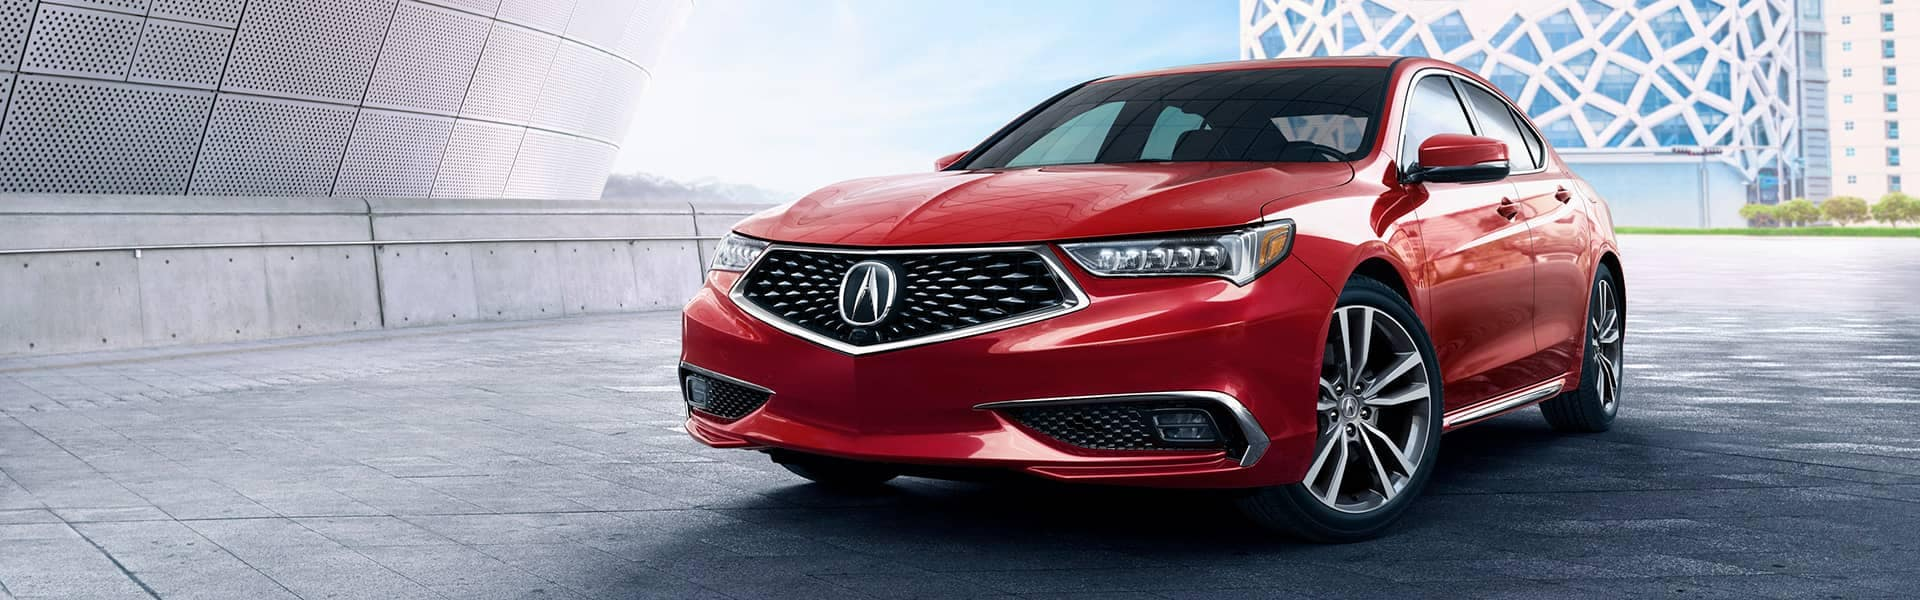 2020 Acura TLX in San Marino Red